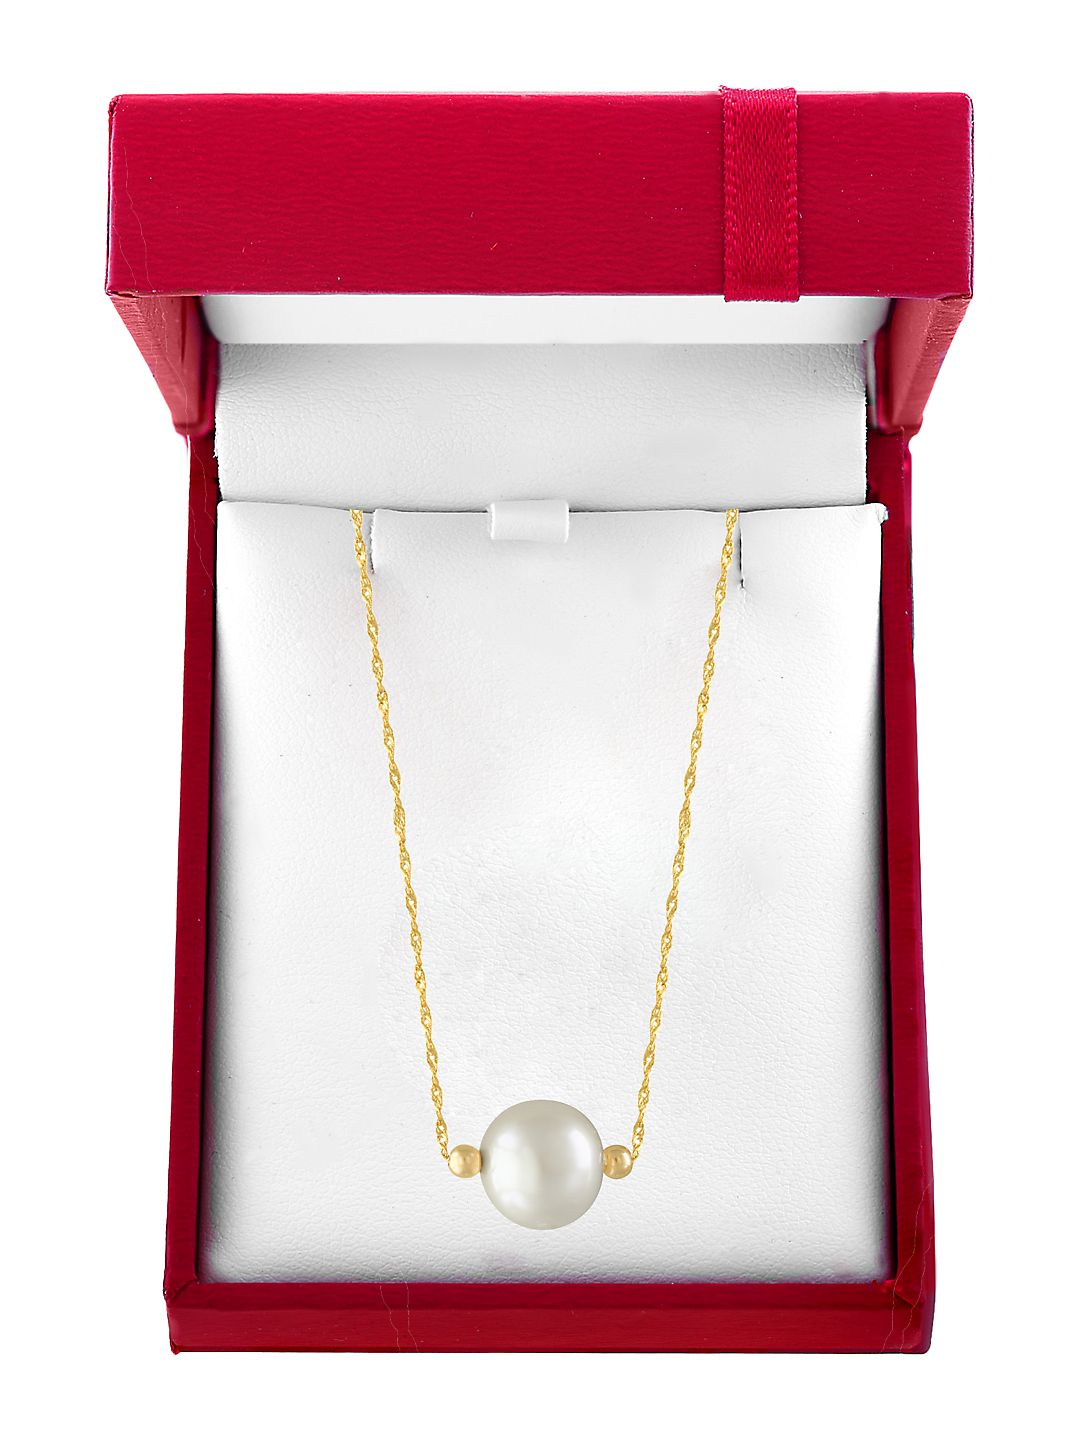 Red Box 10MM White Pearl and 14K Yellow Gold Necklace